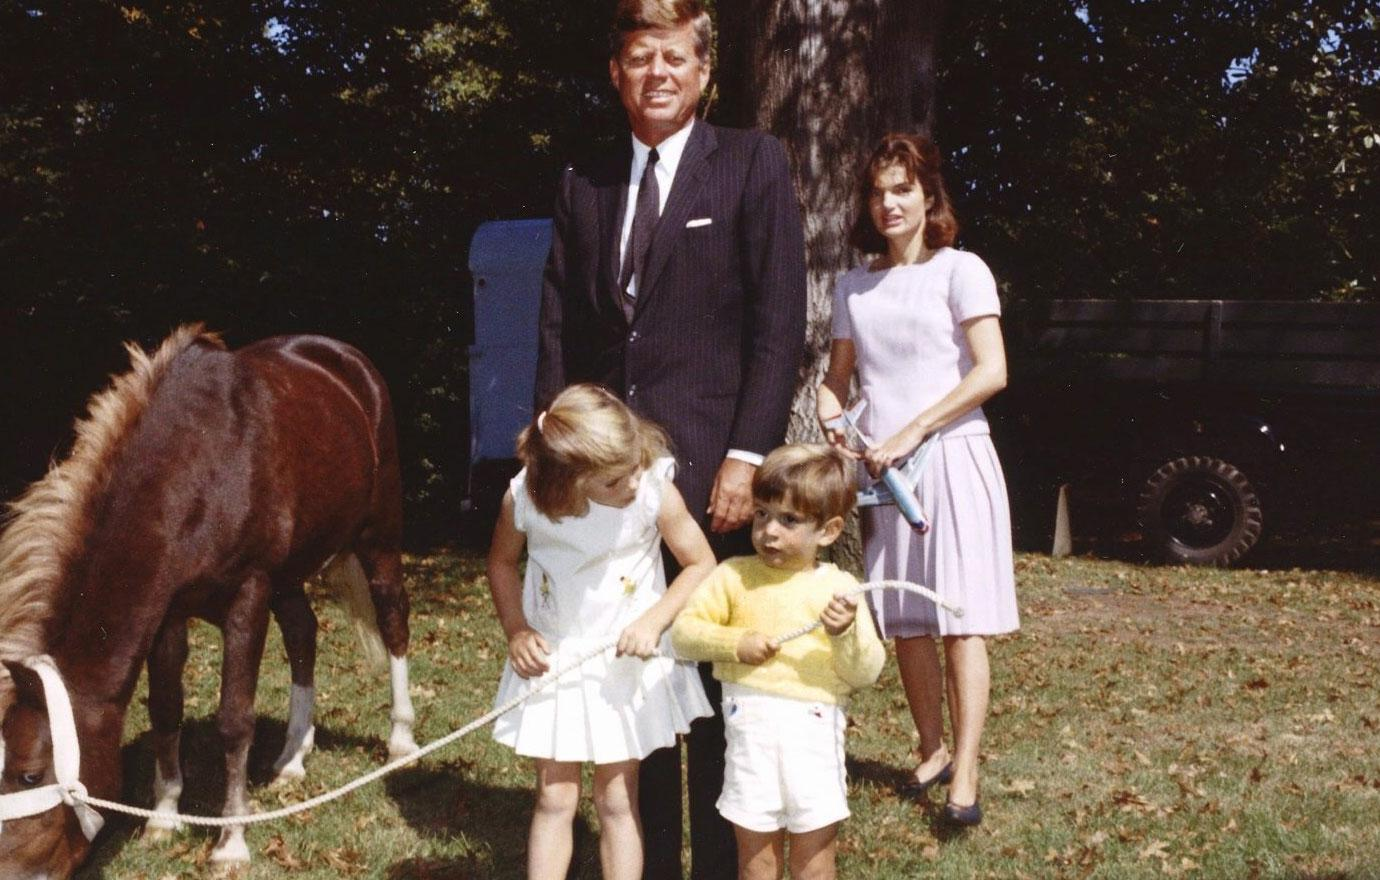 Book Claims JFK Murdered Over Affair With Socialite